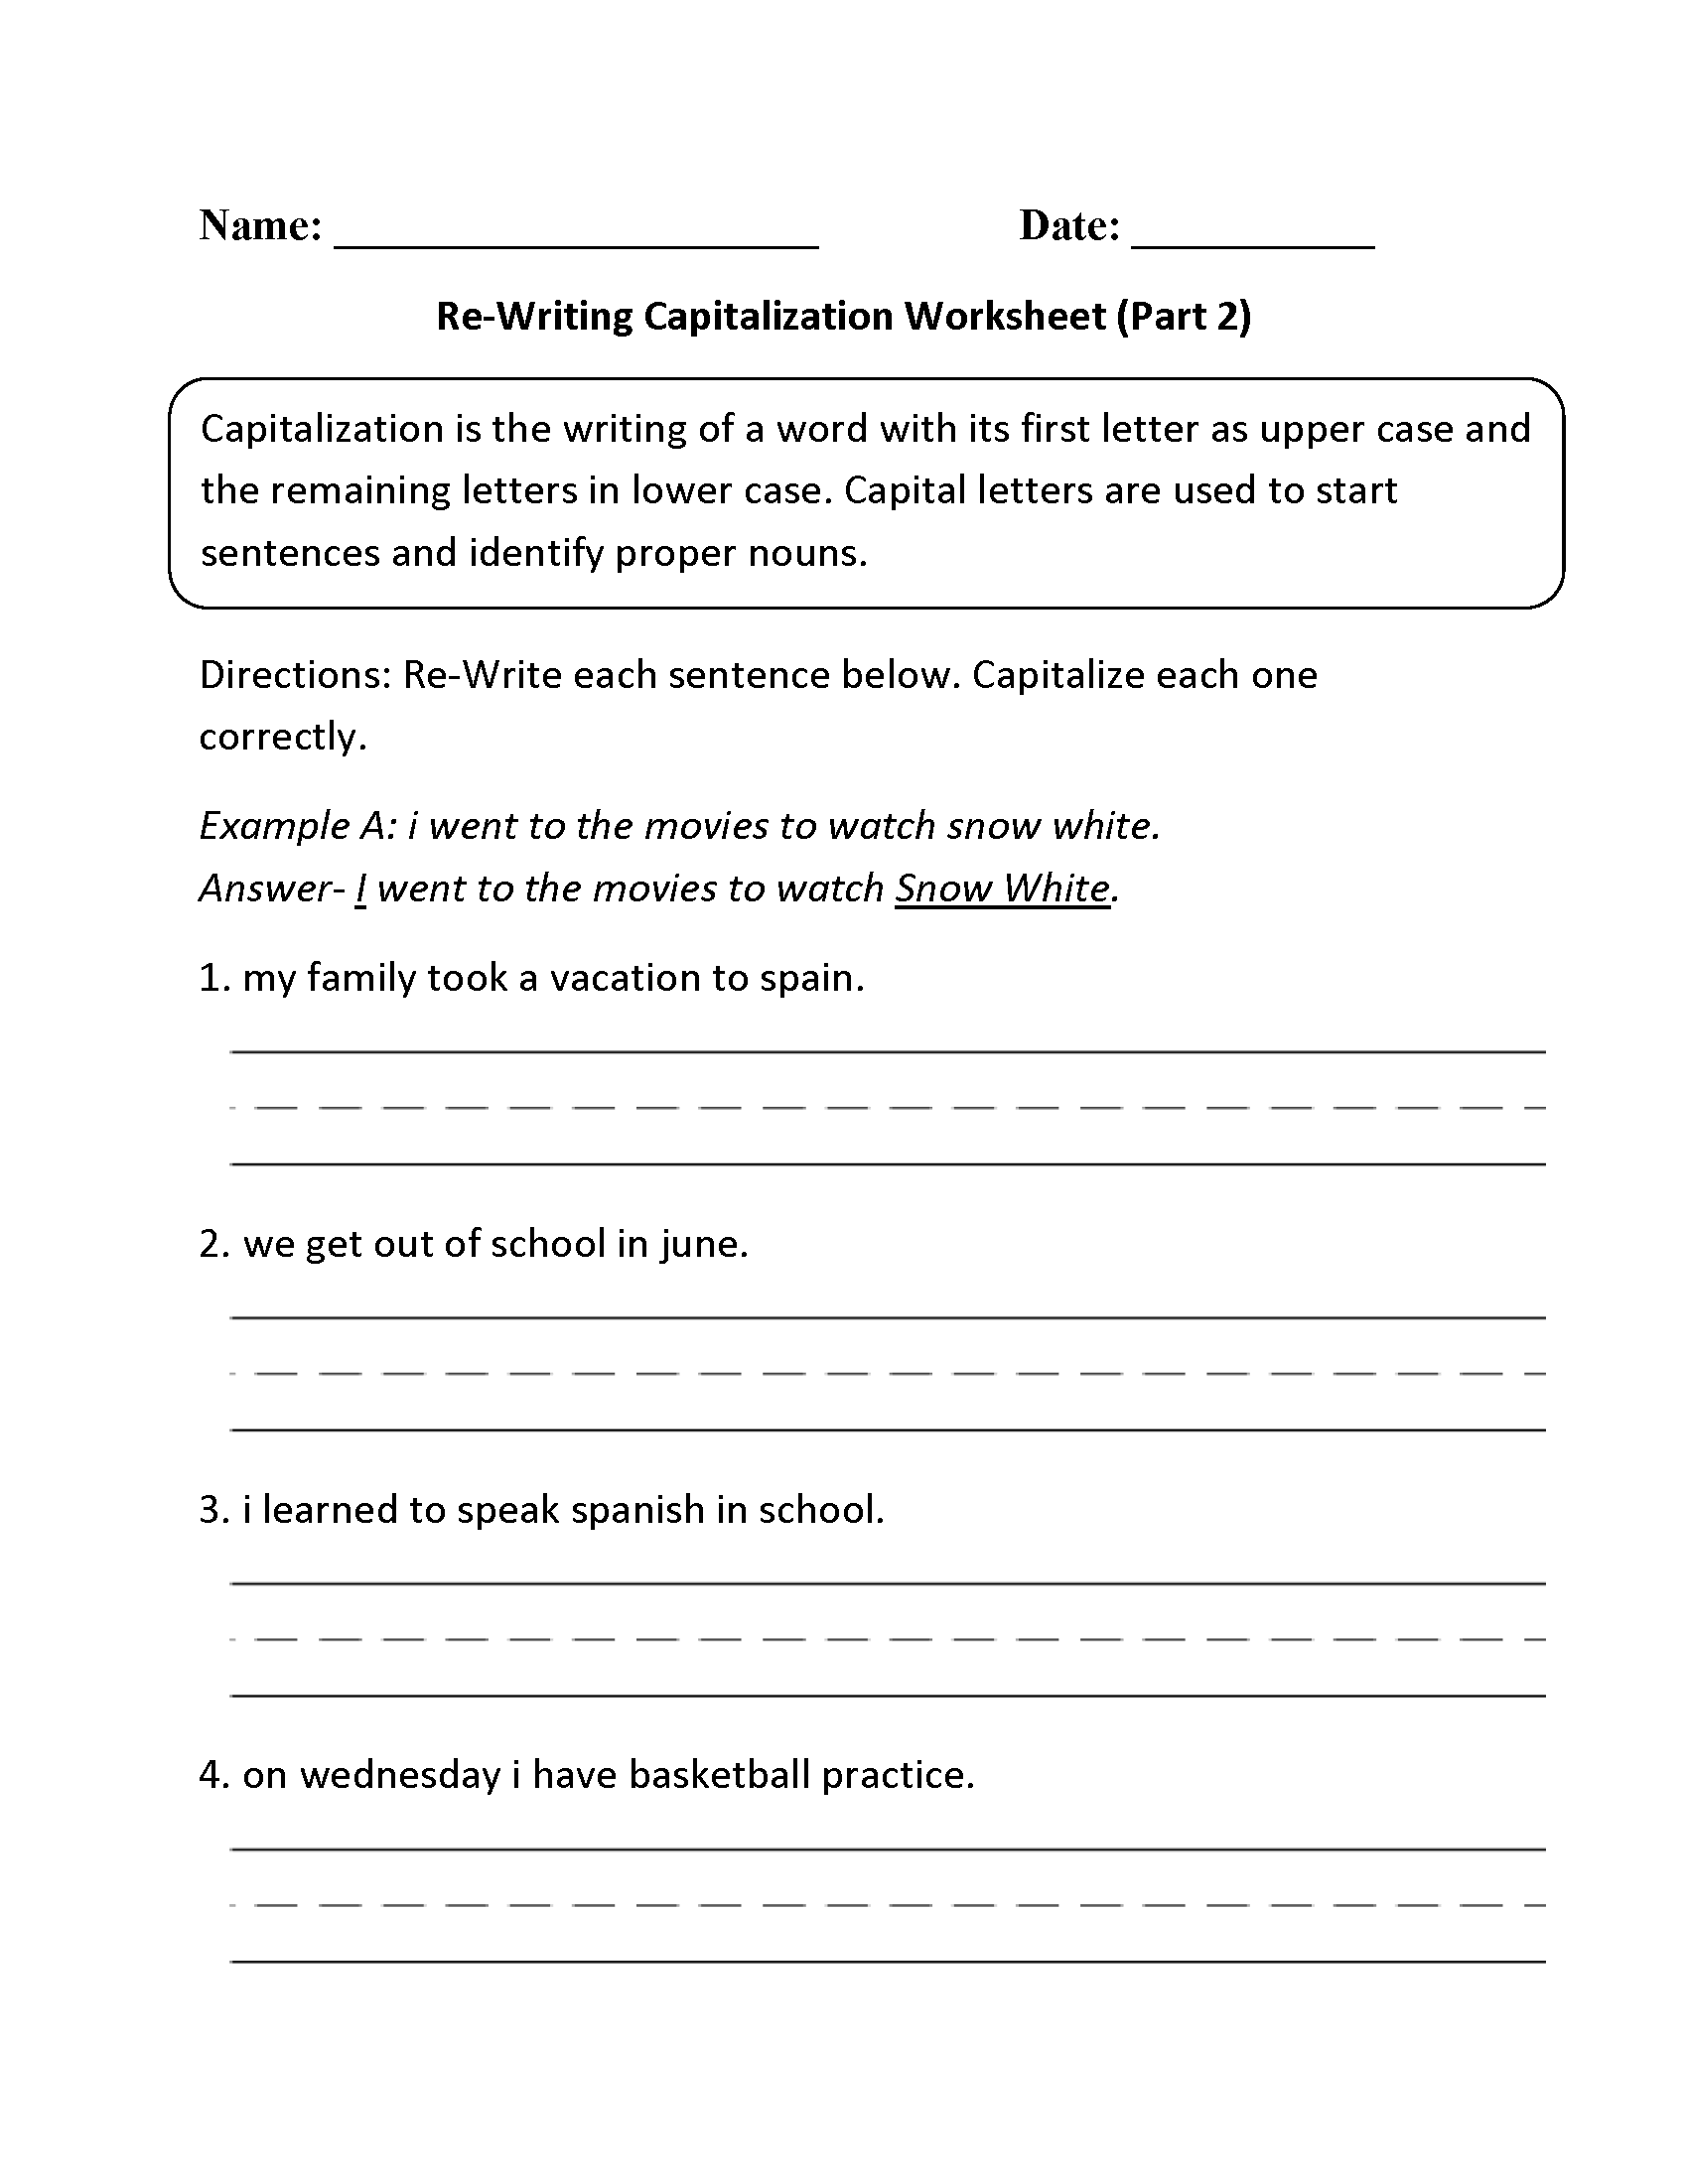 Worksheets Parts Of A Letter Worksheet englishlinx com capitalization worksheets worksheet part 2